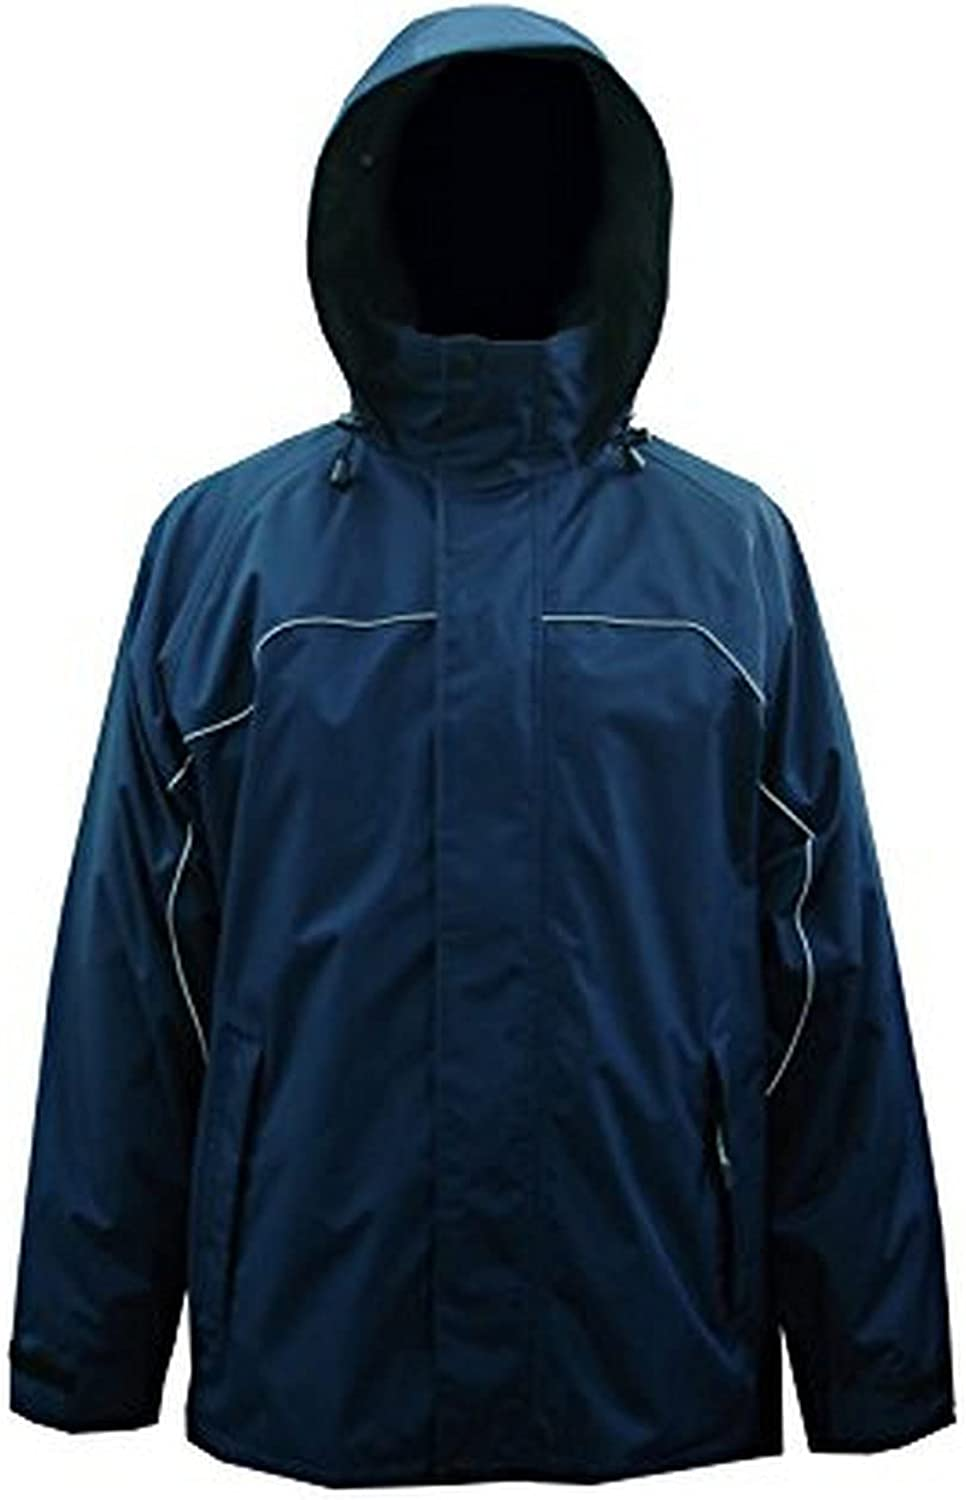 VIKING Torrent 3-in-1 Waterproof and Windproof Insulated Winter Jacket with Reflective Piping